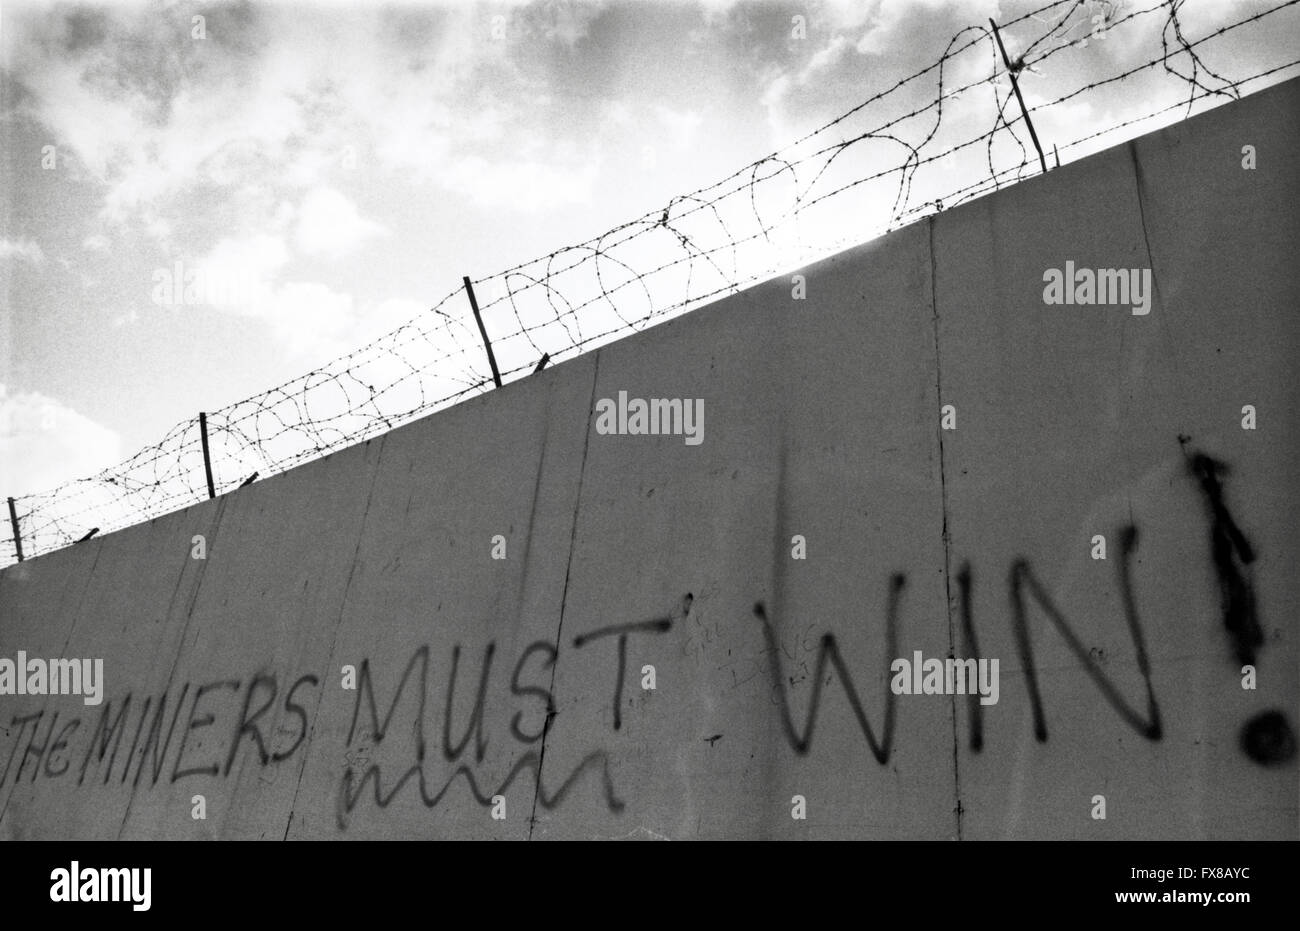 """Archive image from 1980s. Graffiti of the Miners Strike 1984 - 1985 """"The Miners Must Win"""" Newport, South Wales. Stock Photo"""